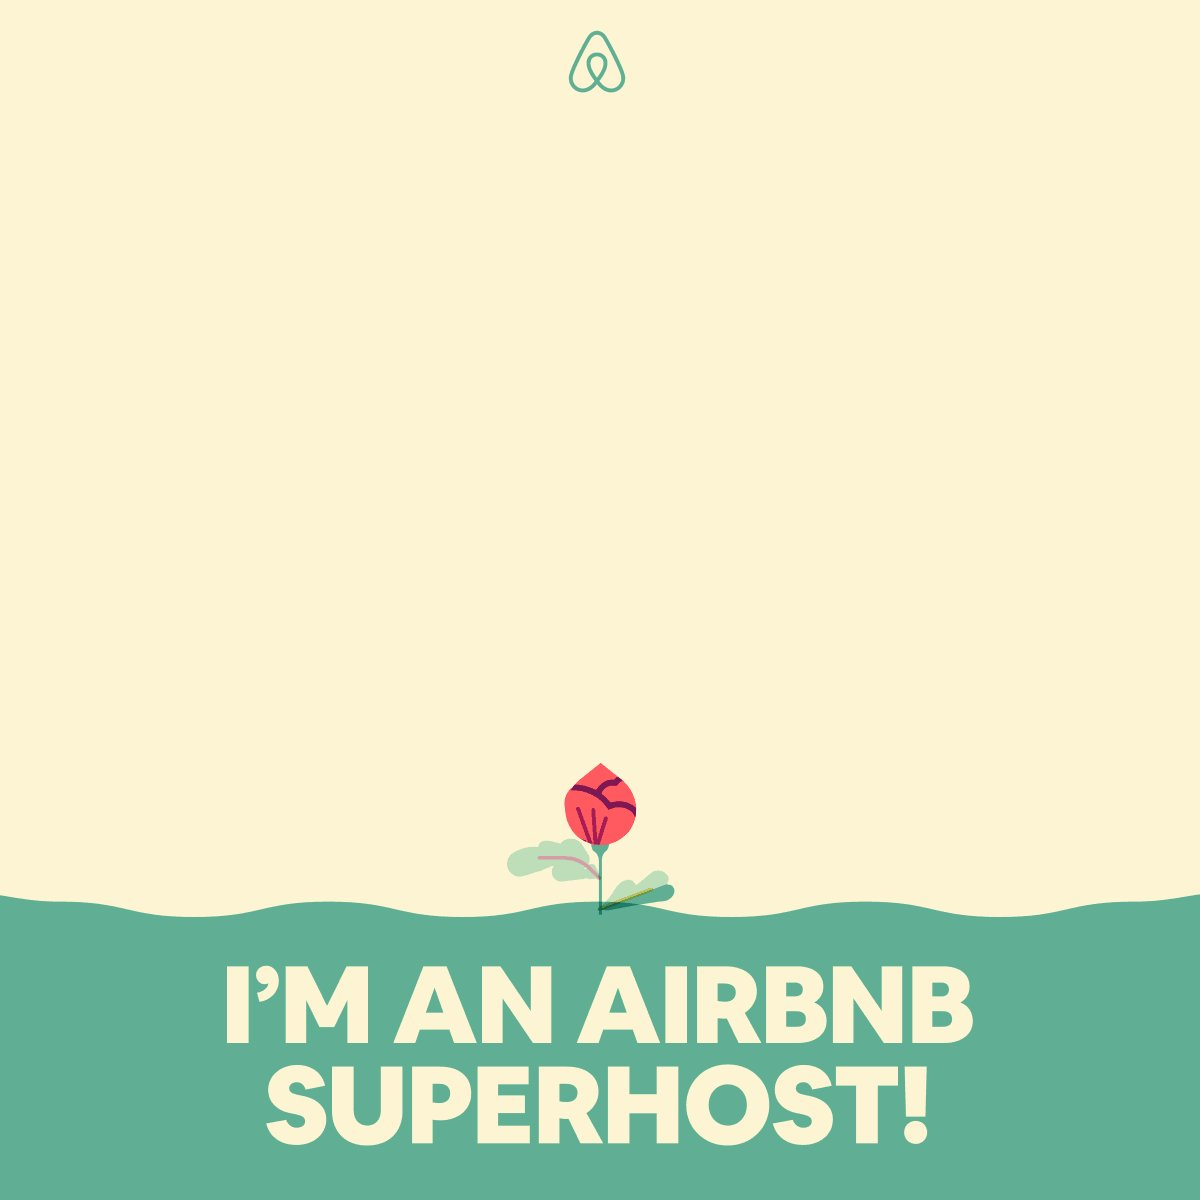 Just reached my anniversary as a #Superhost on Airbnb!   #Airbnb #villabali #beach #sunset #adventure #stayathome #travellater #travel #travellist #great #coconut #traveling